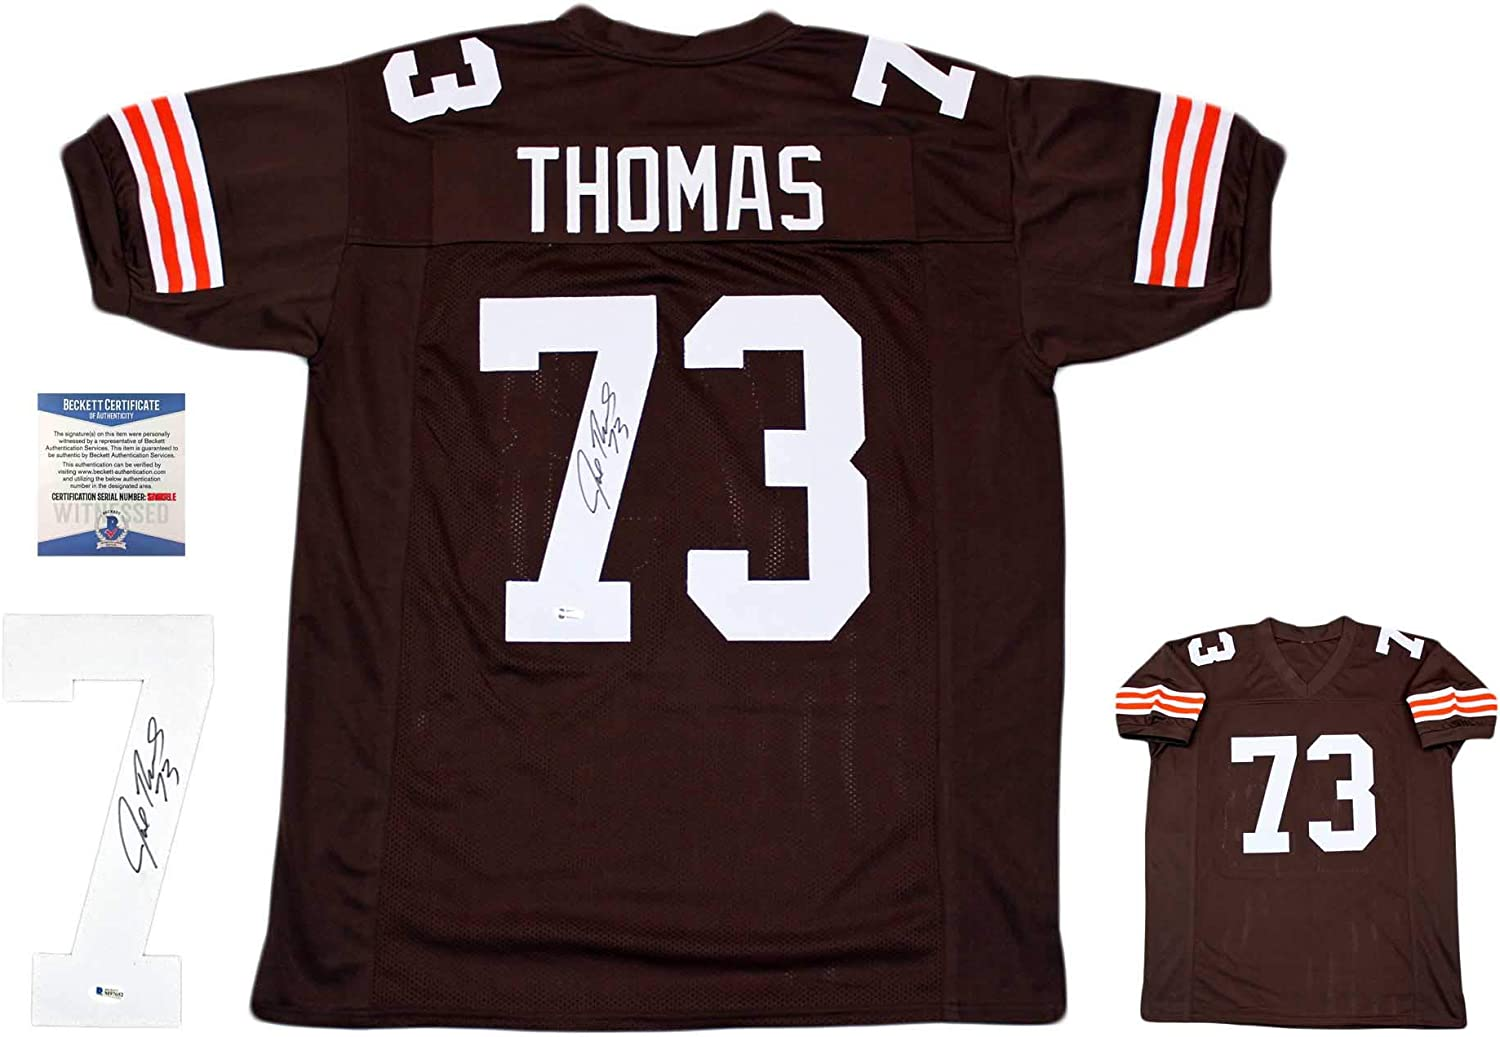 Joe Thomas Autographed Signed Jersey - TB - Beckett Authentic at ...